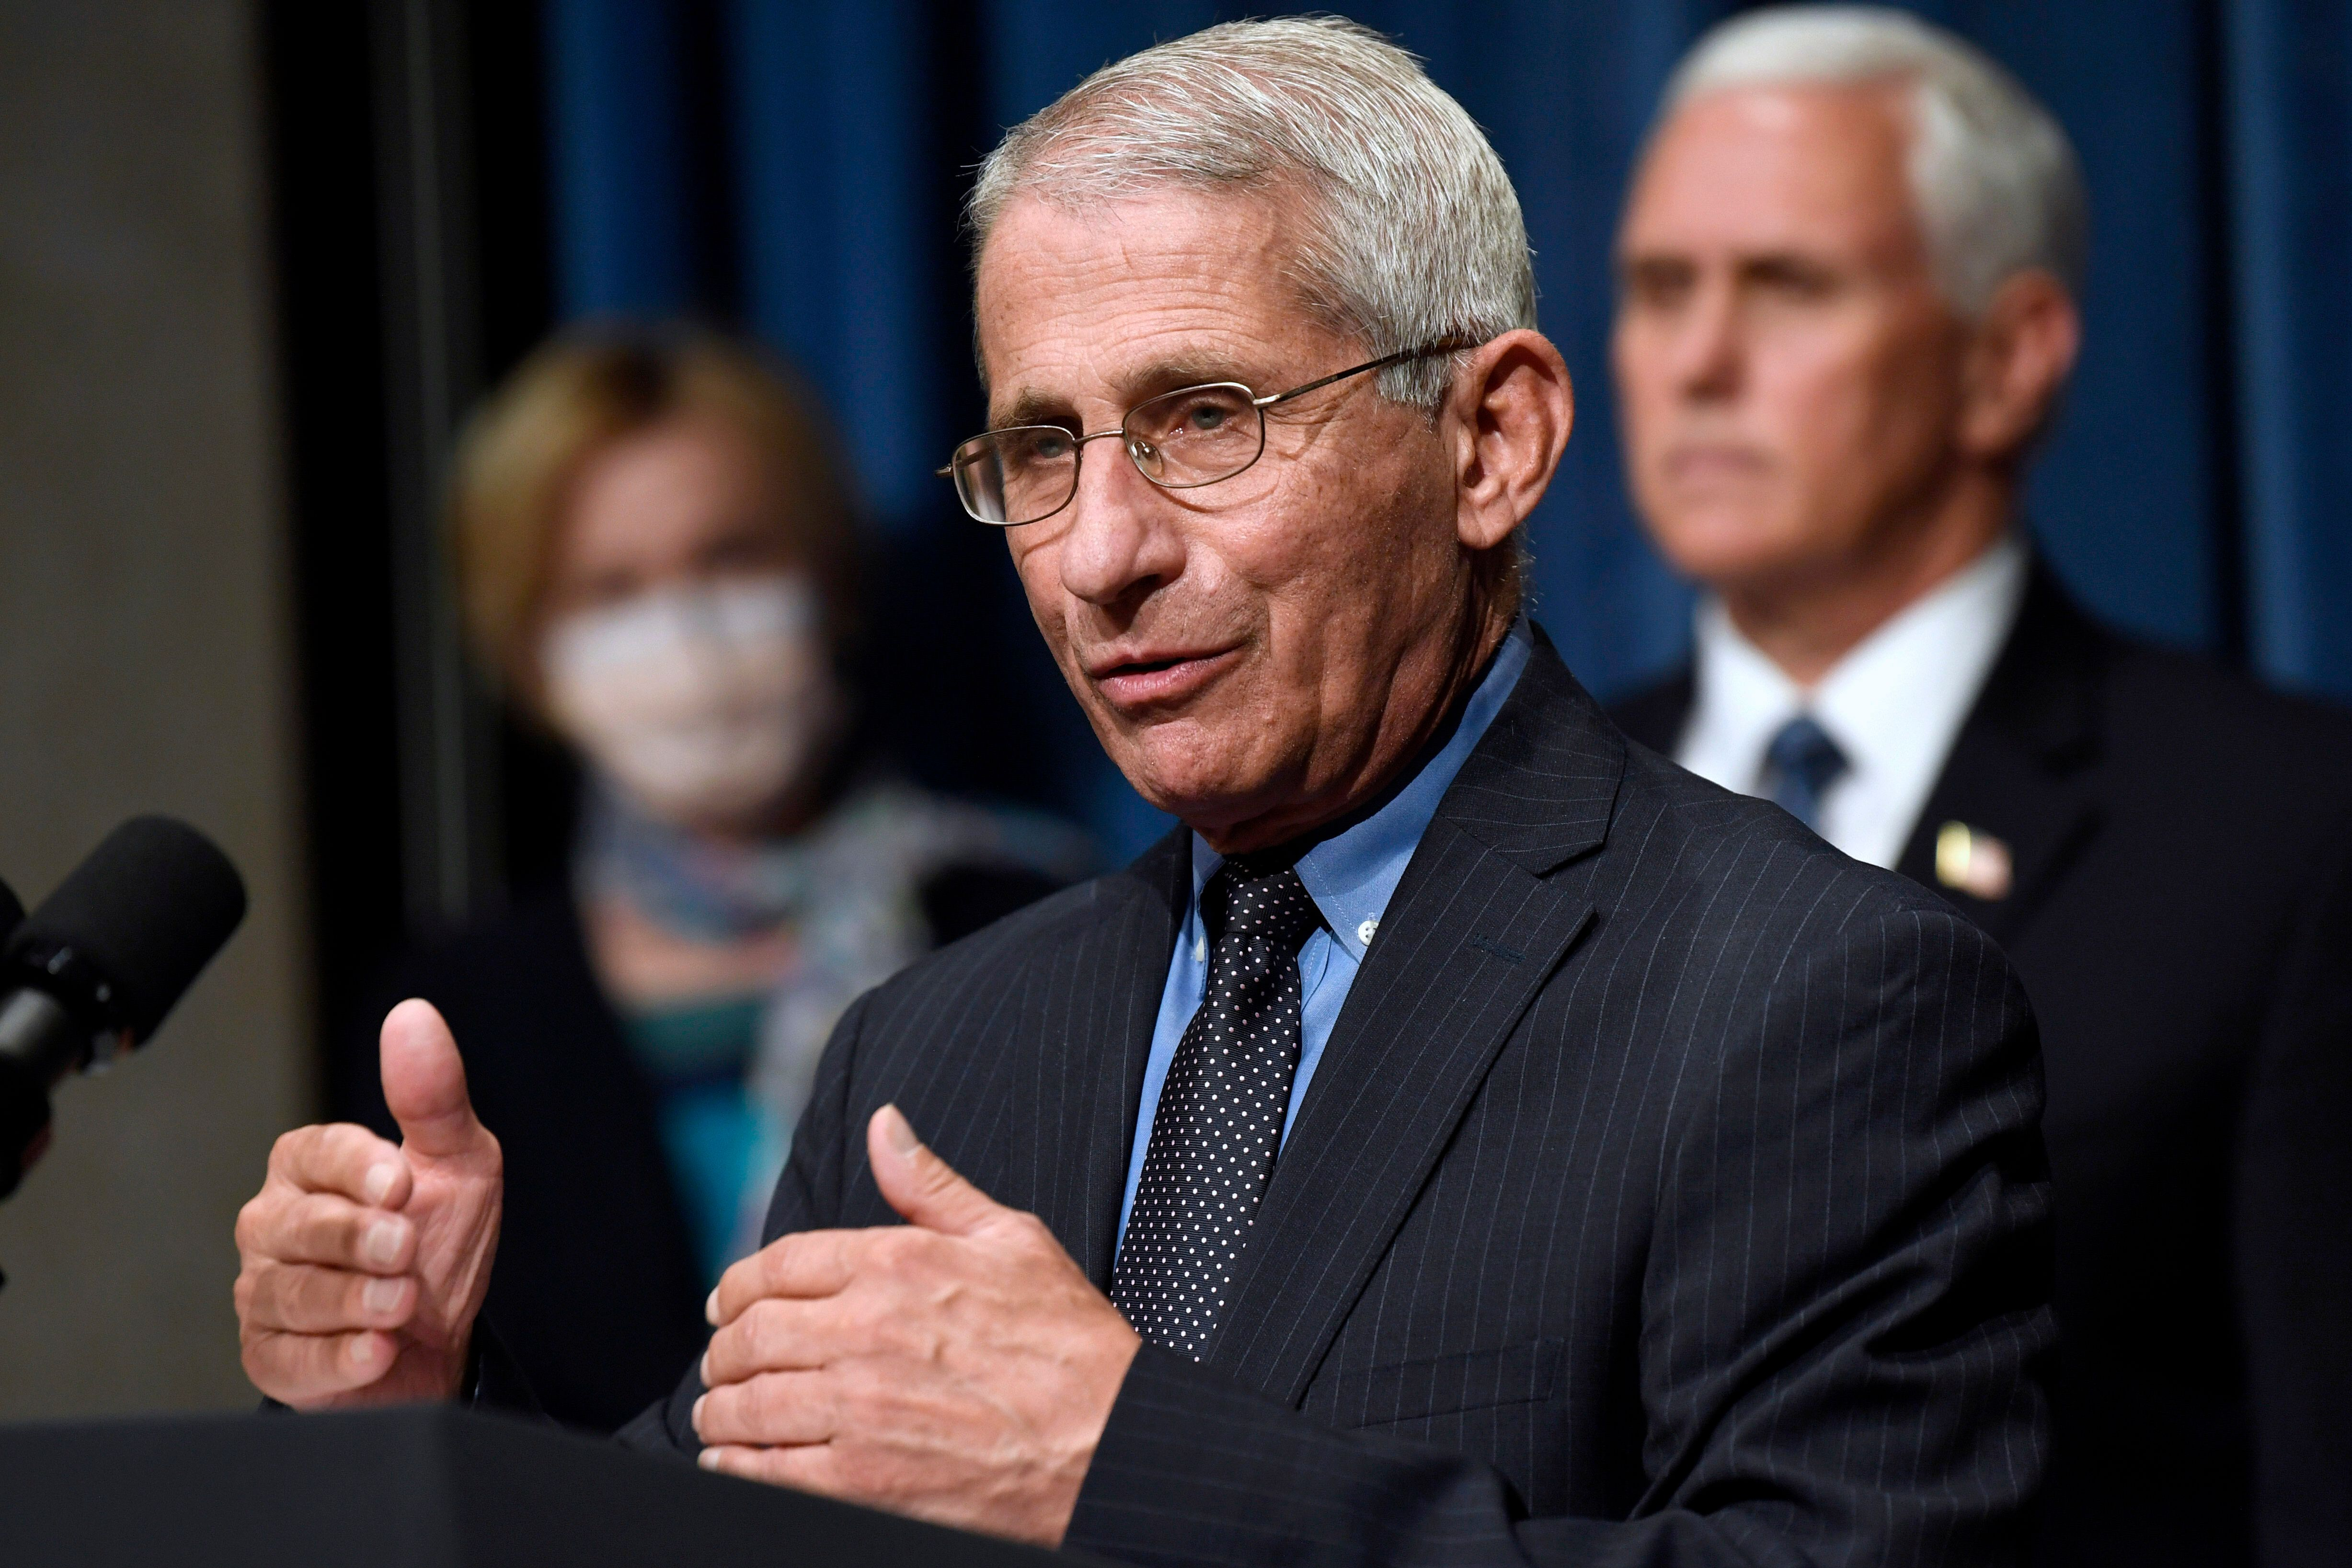 Dr. Anthony Fauci on Wednesday reaffirmed that scientifically valid studies have found hydroxychloroquine is not effective in